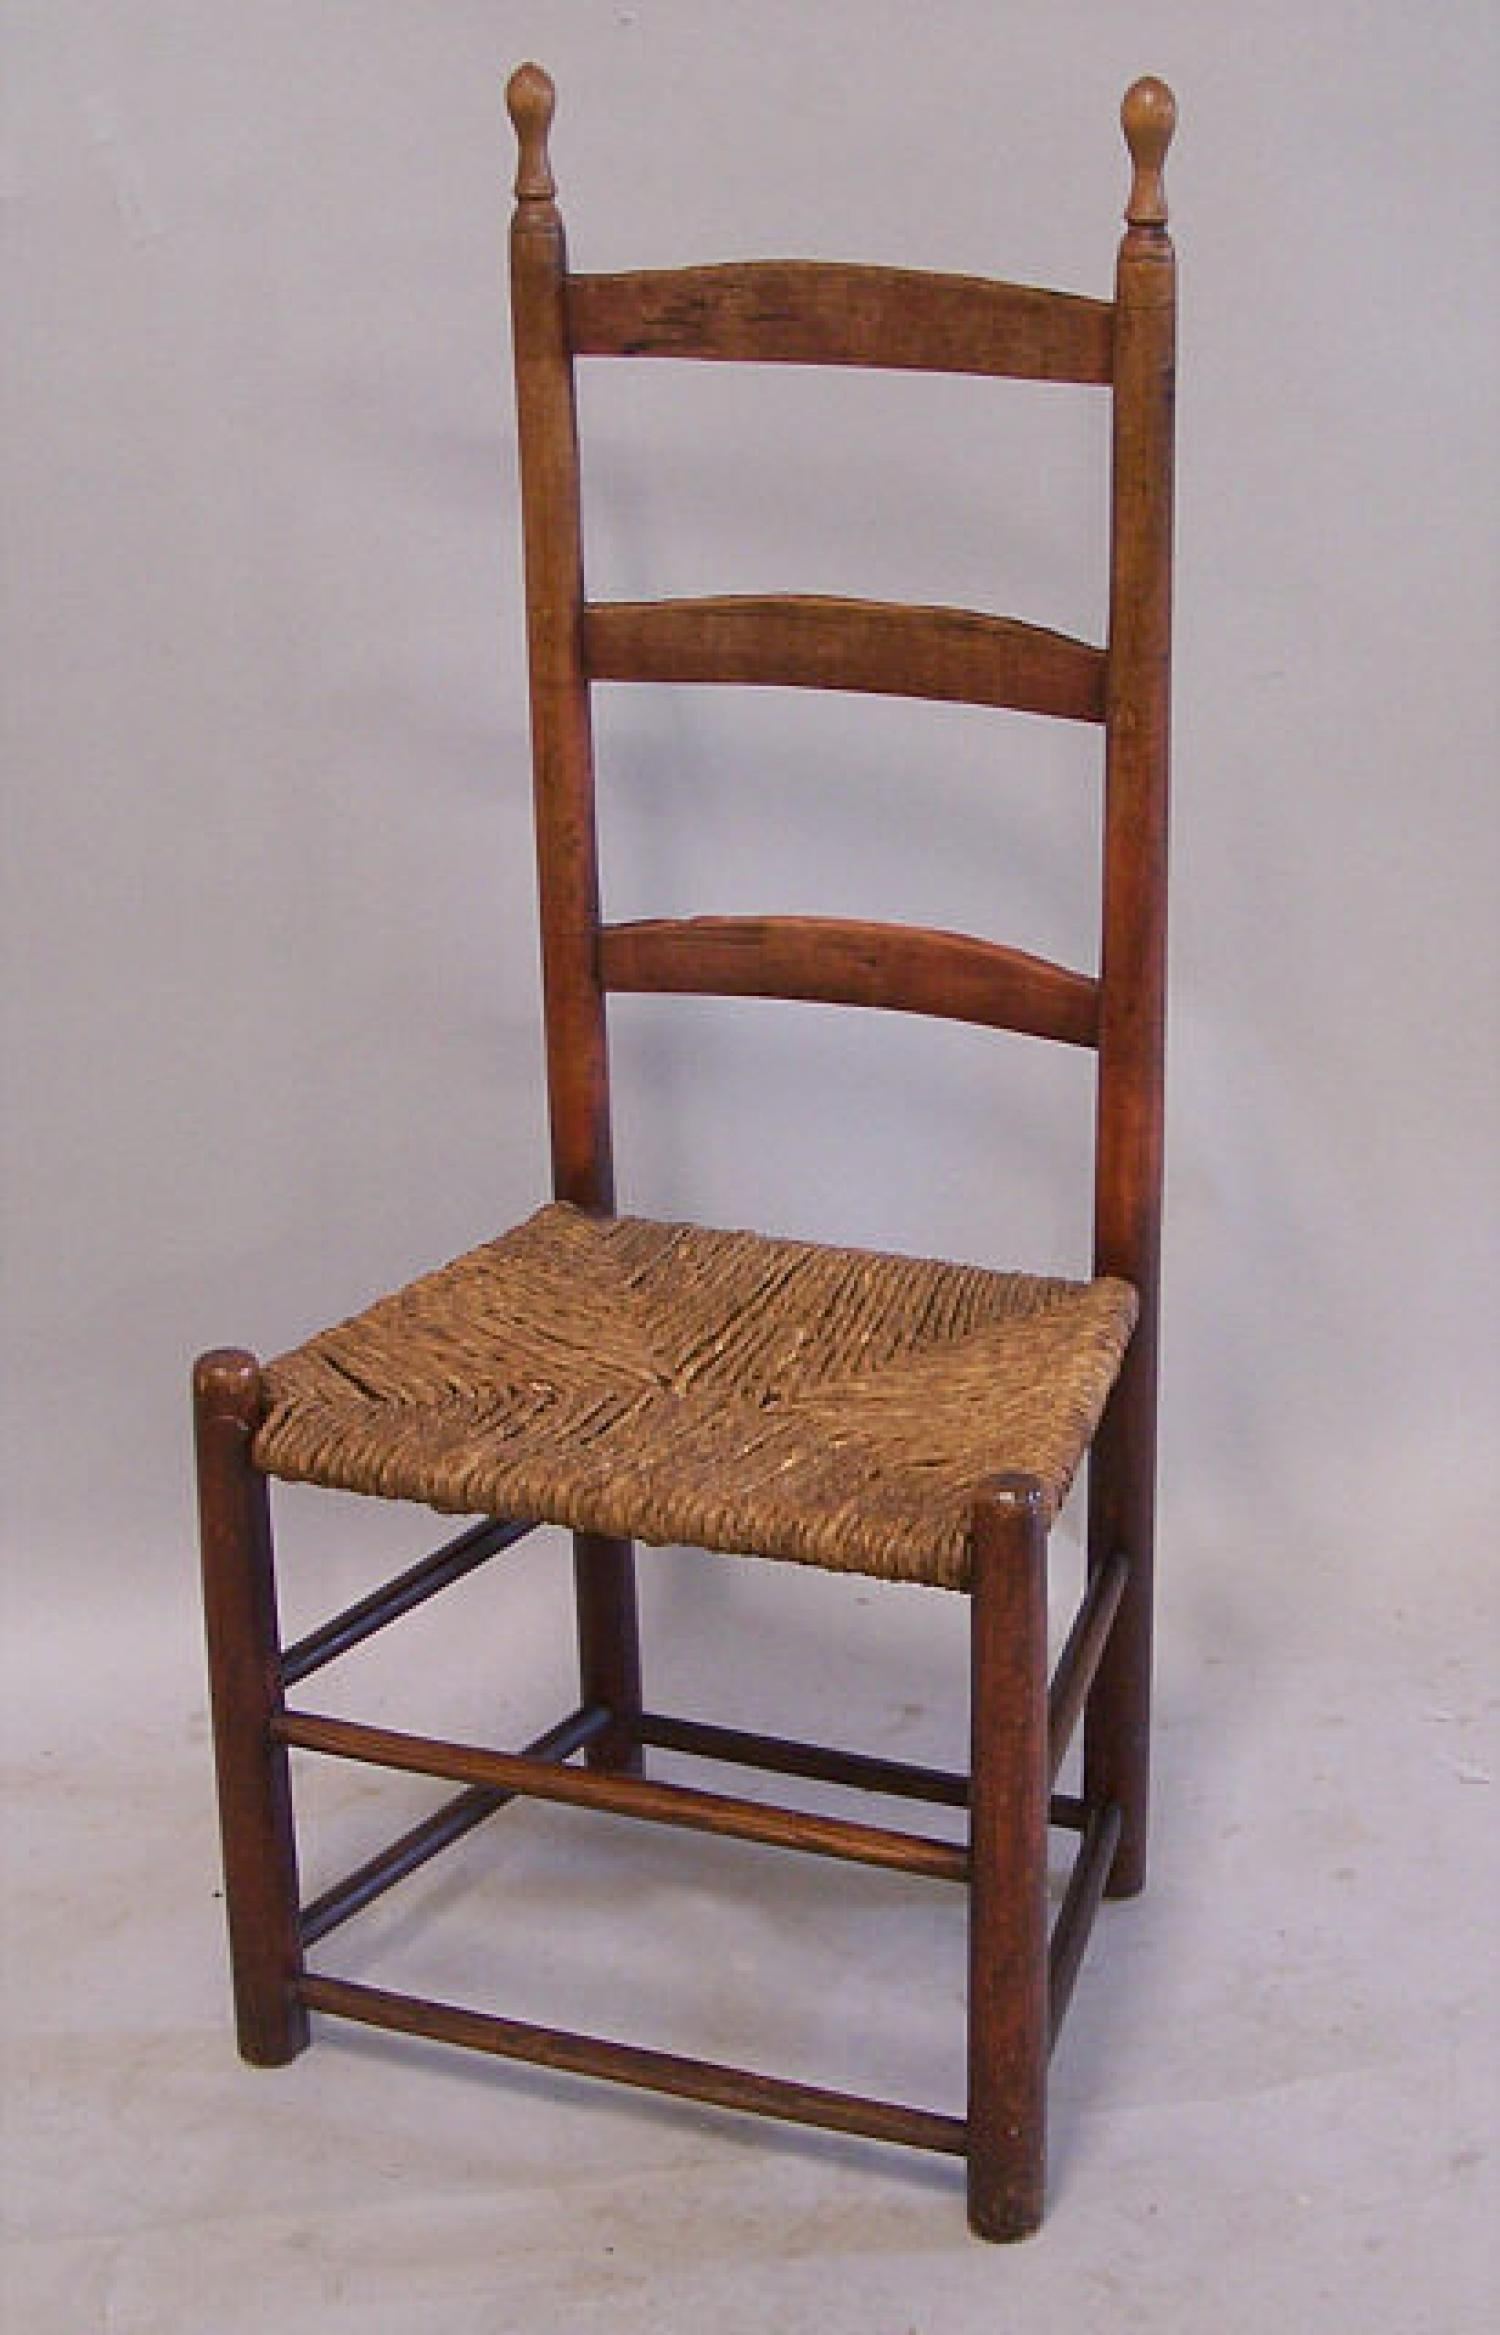 Early American country ladder back chair c1740 - American Country Ladder Back Chair C1740